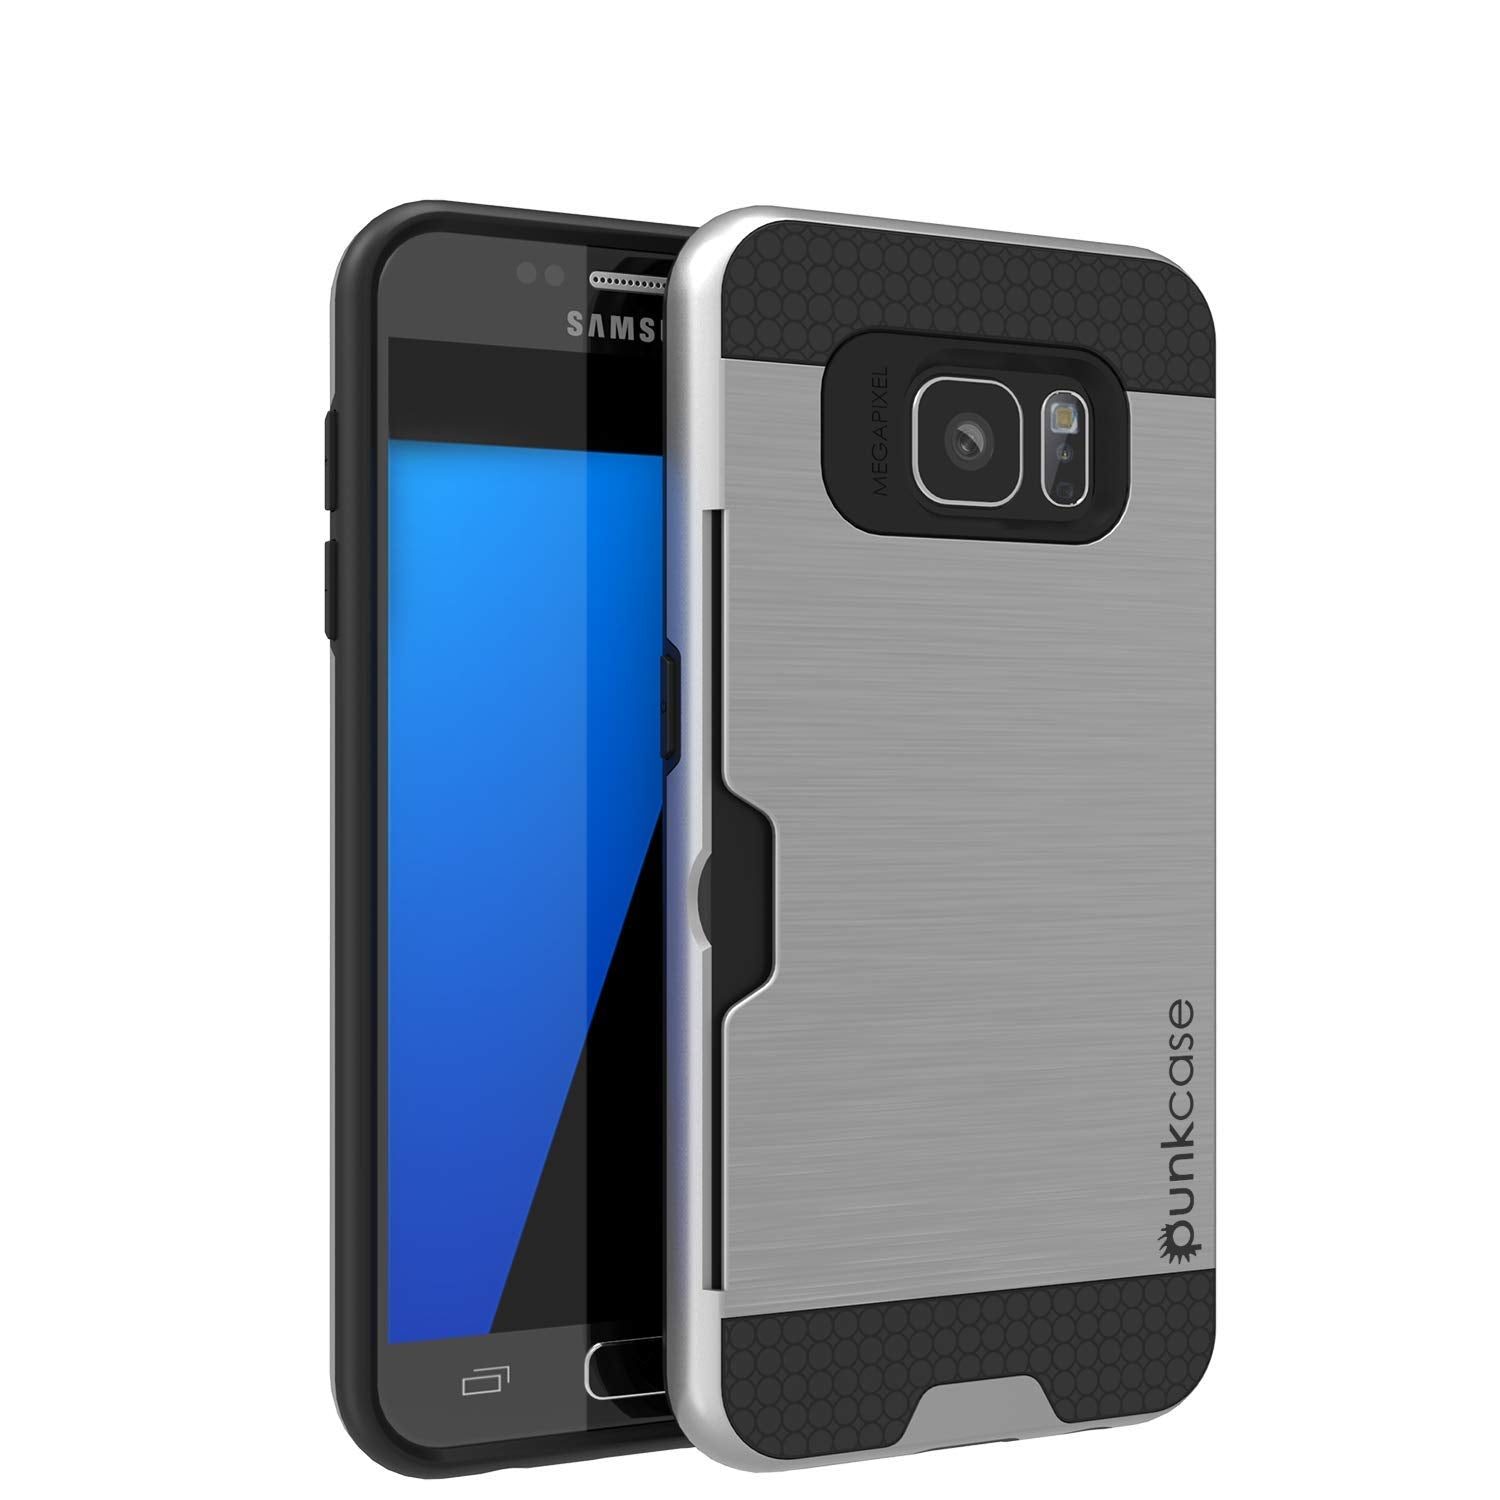 Galaxy S7+ Plus Dual-Layer Ultra Screen Protector Case W/ Card Slot [Silver]